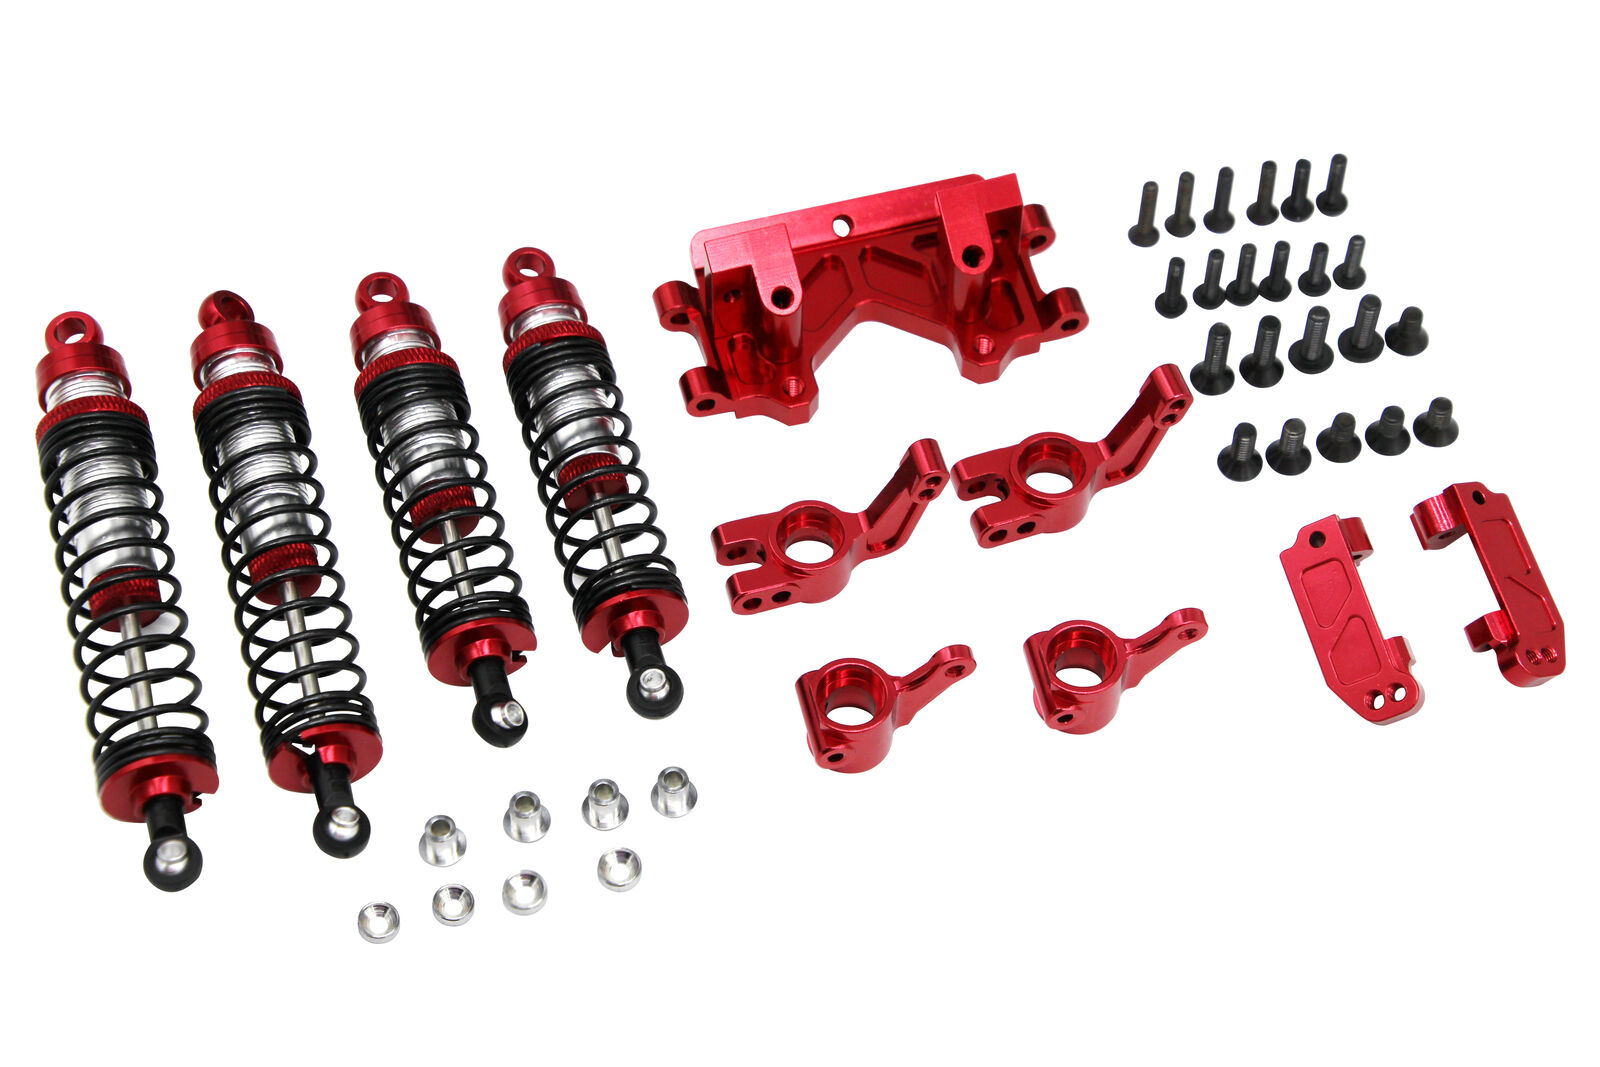 X Spede XPTE929P02 rosso Suspension Tuning Hop up Set Traxxas 1/10 2WD